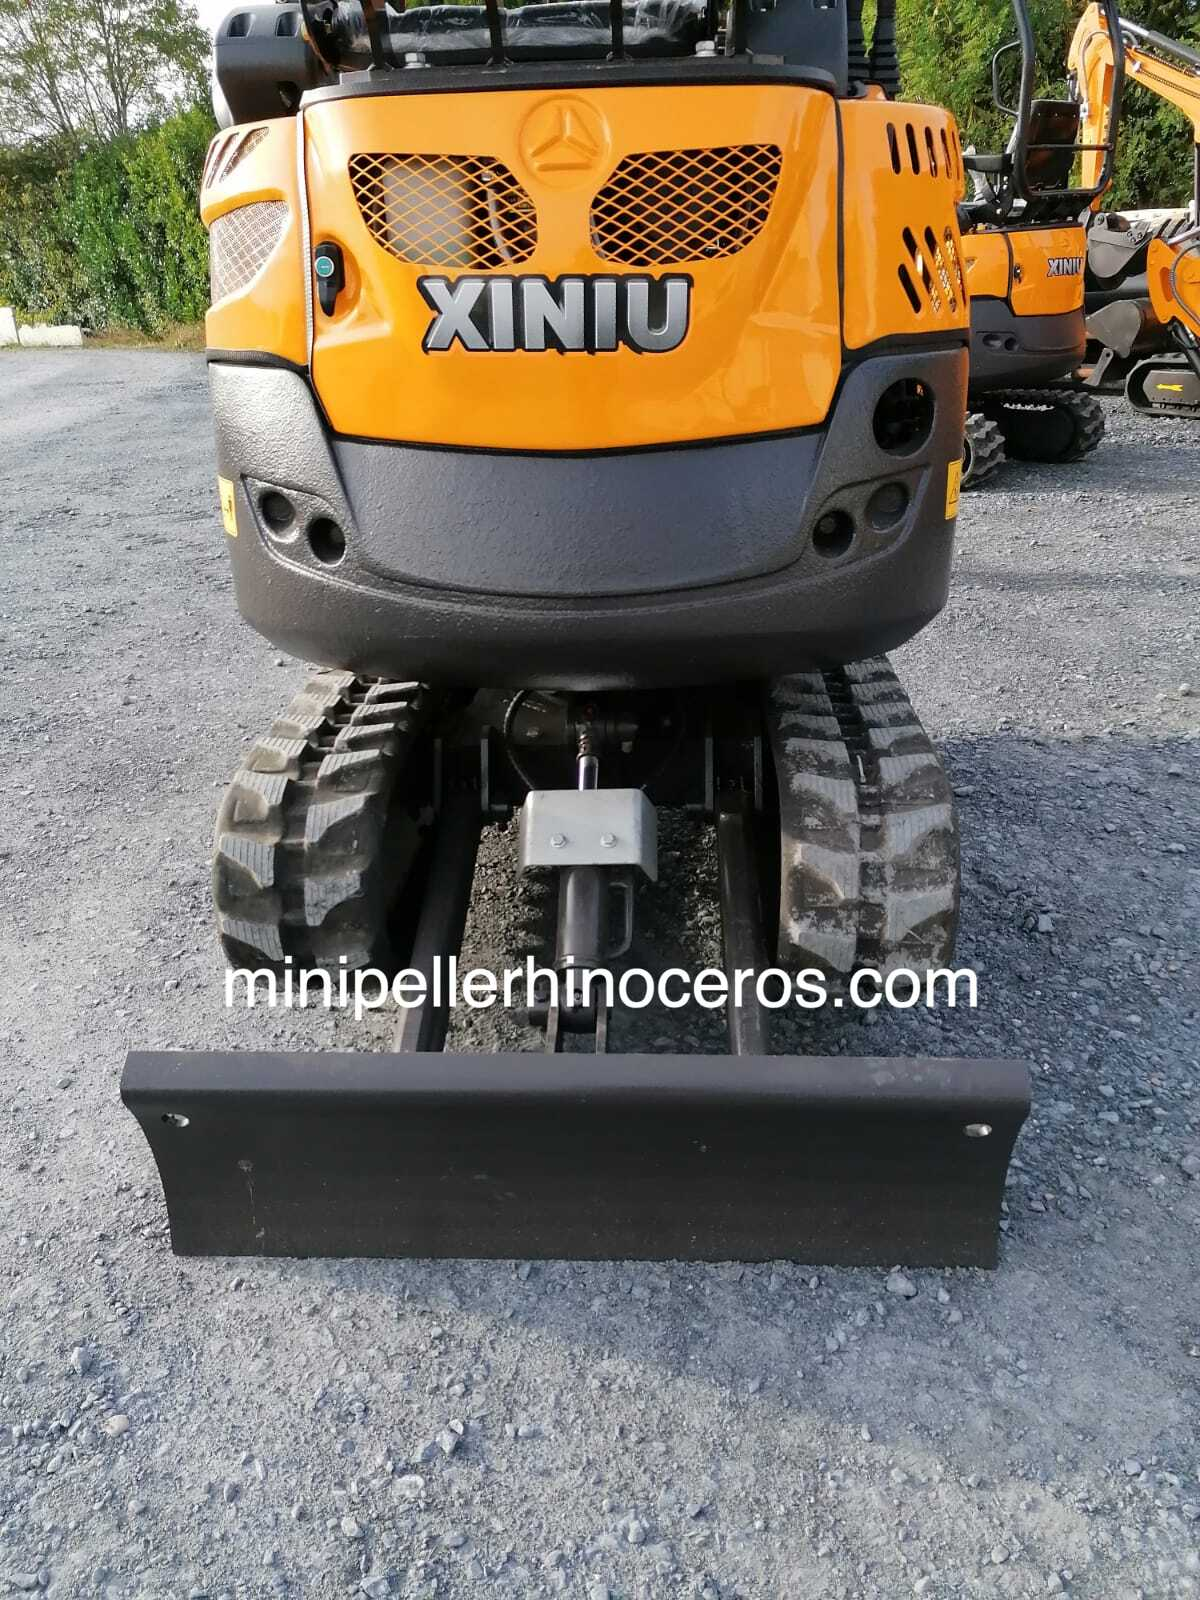 Variable track MINI Excavator RHINOCEROS XN20